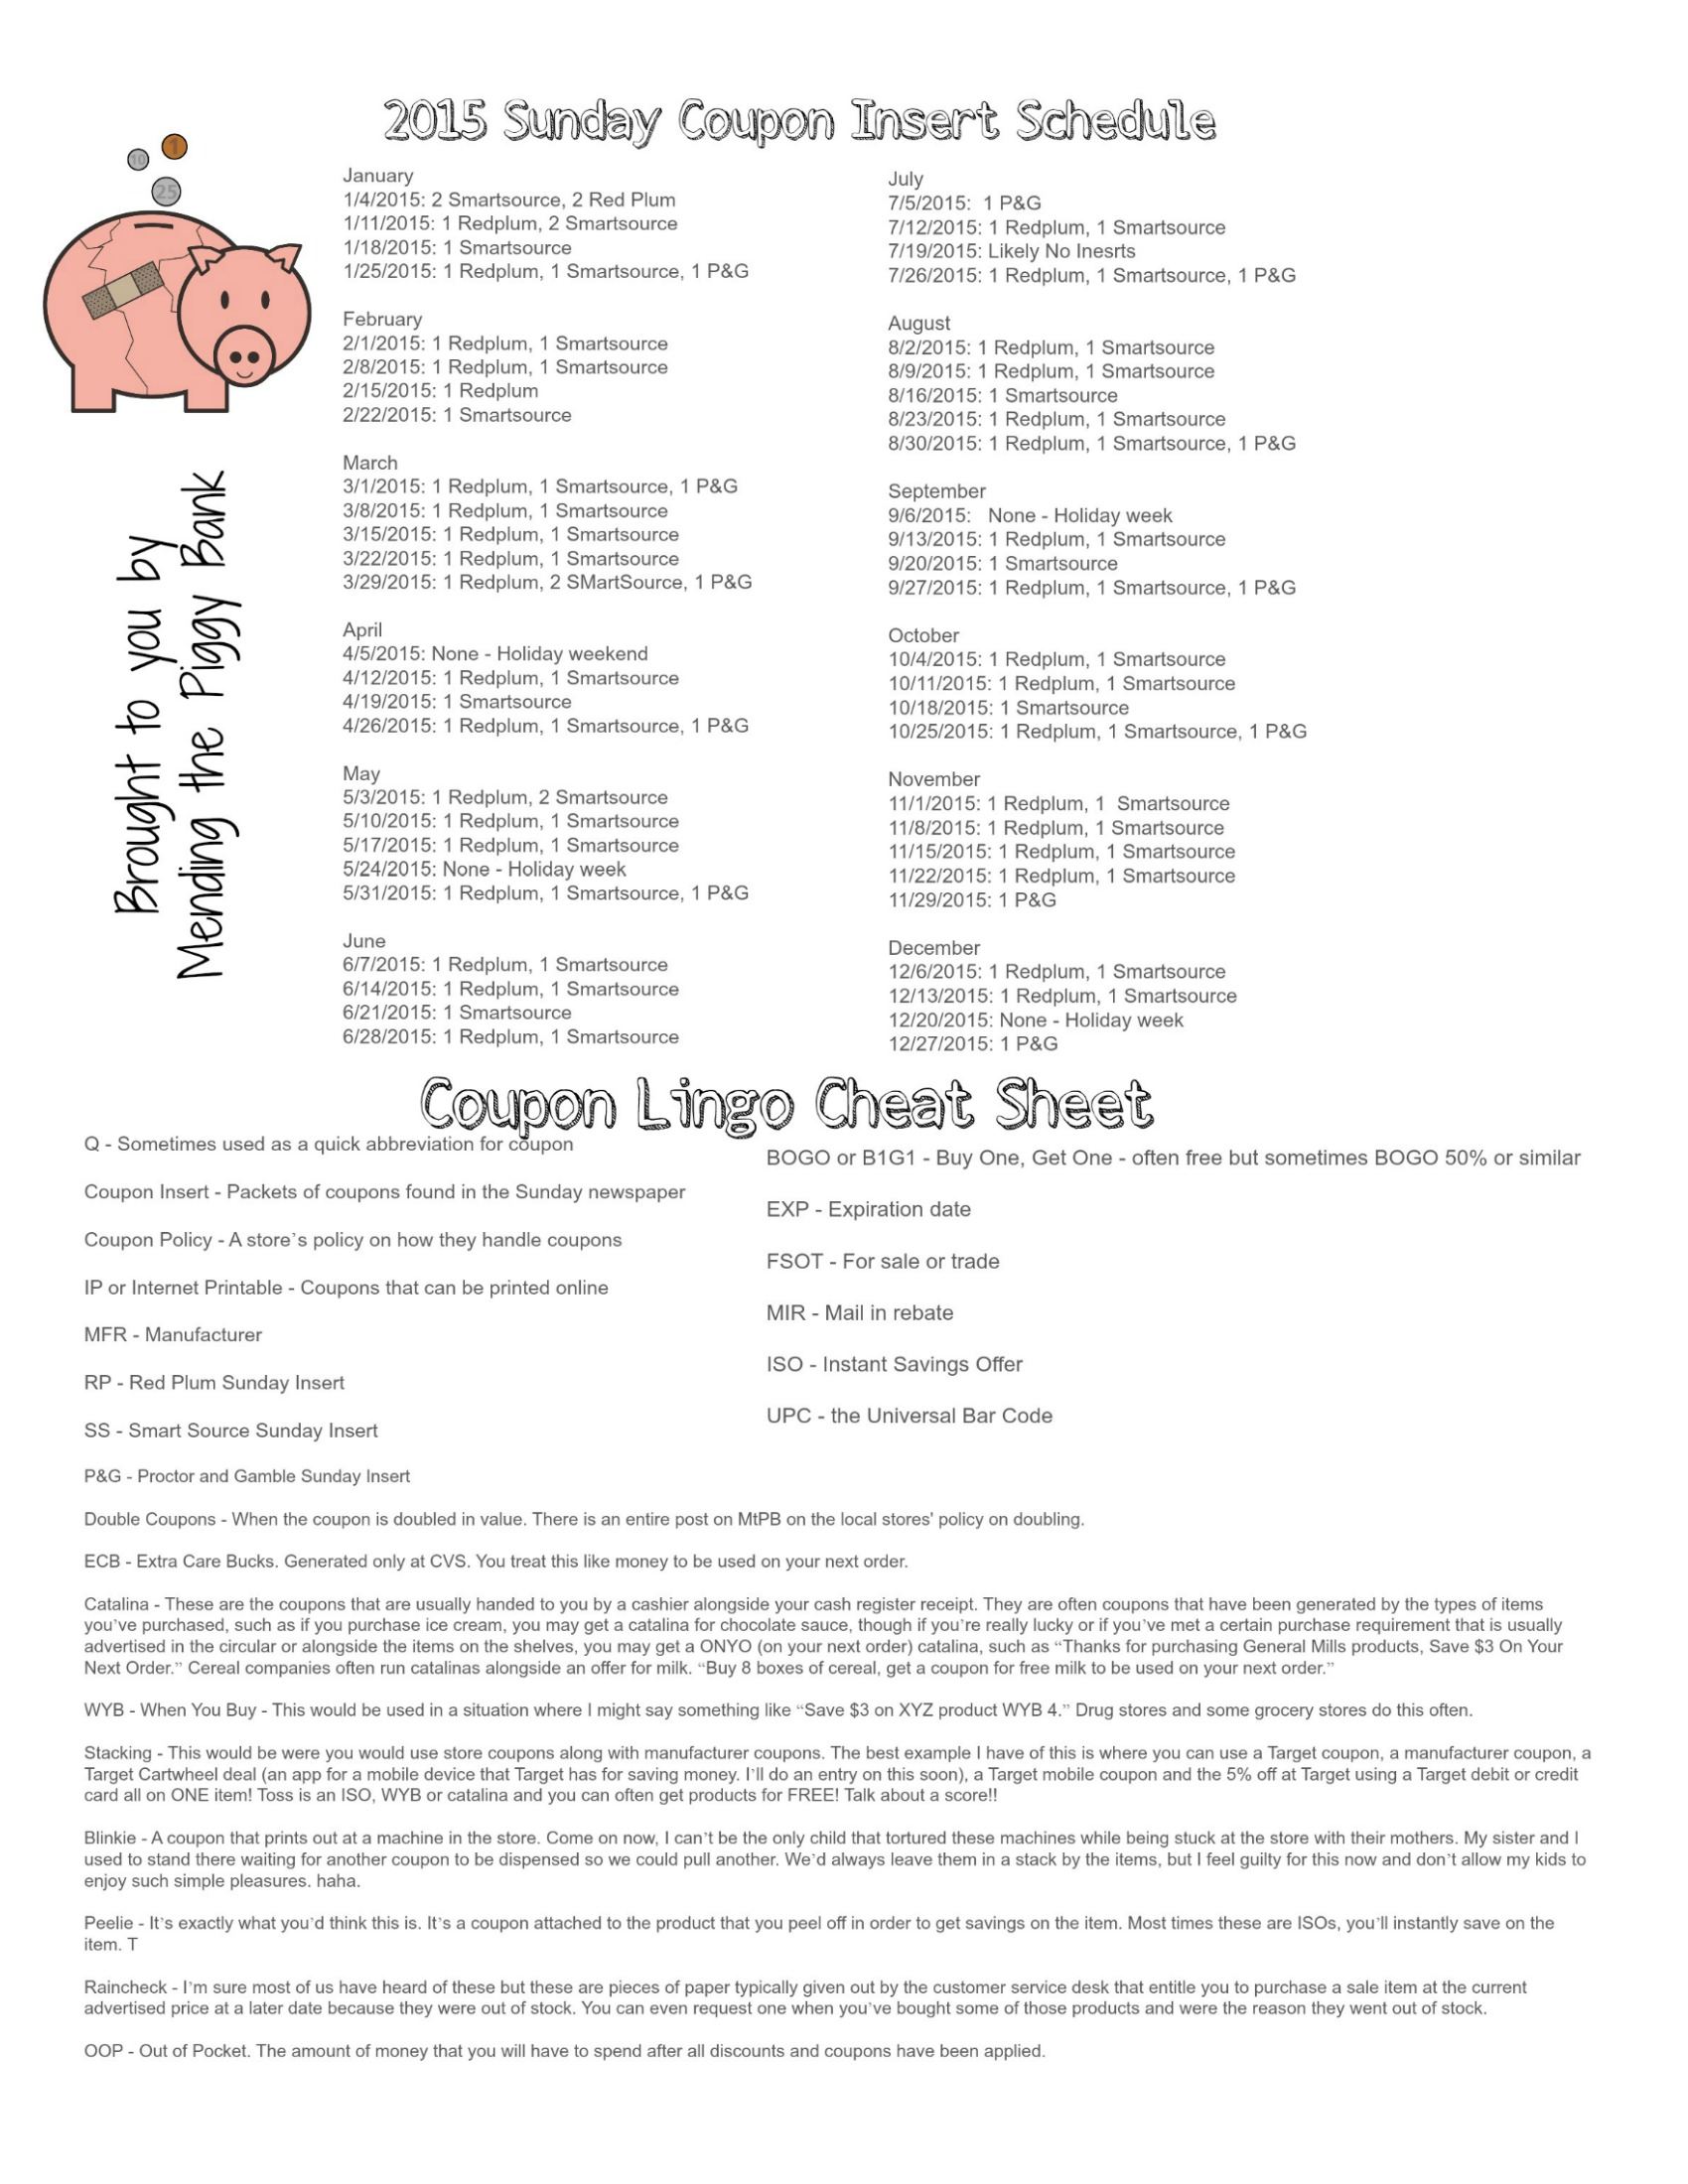 FREE PRINTABLE 2015 Sunday Coupon Insert Schedule and Coupon